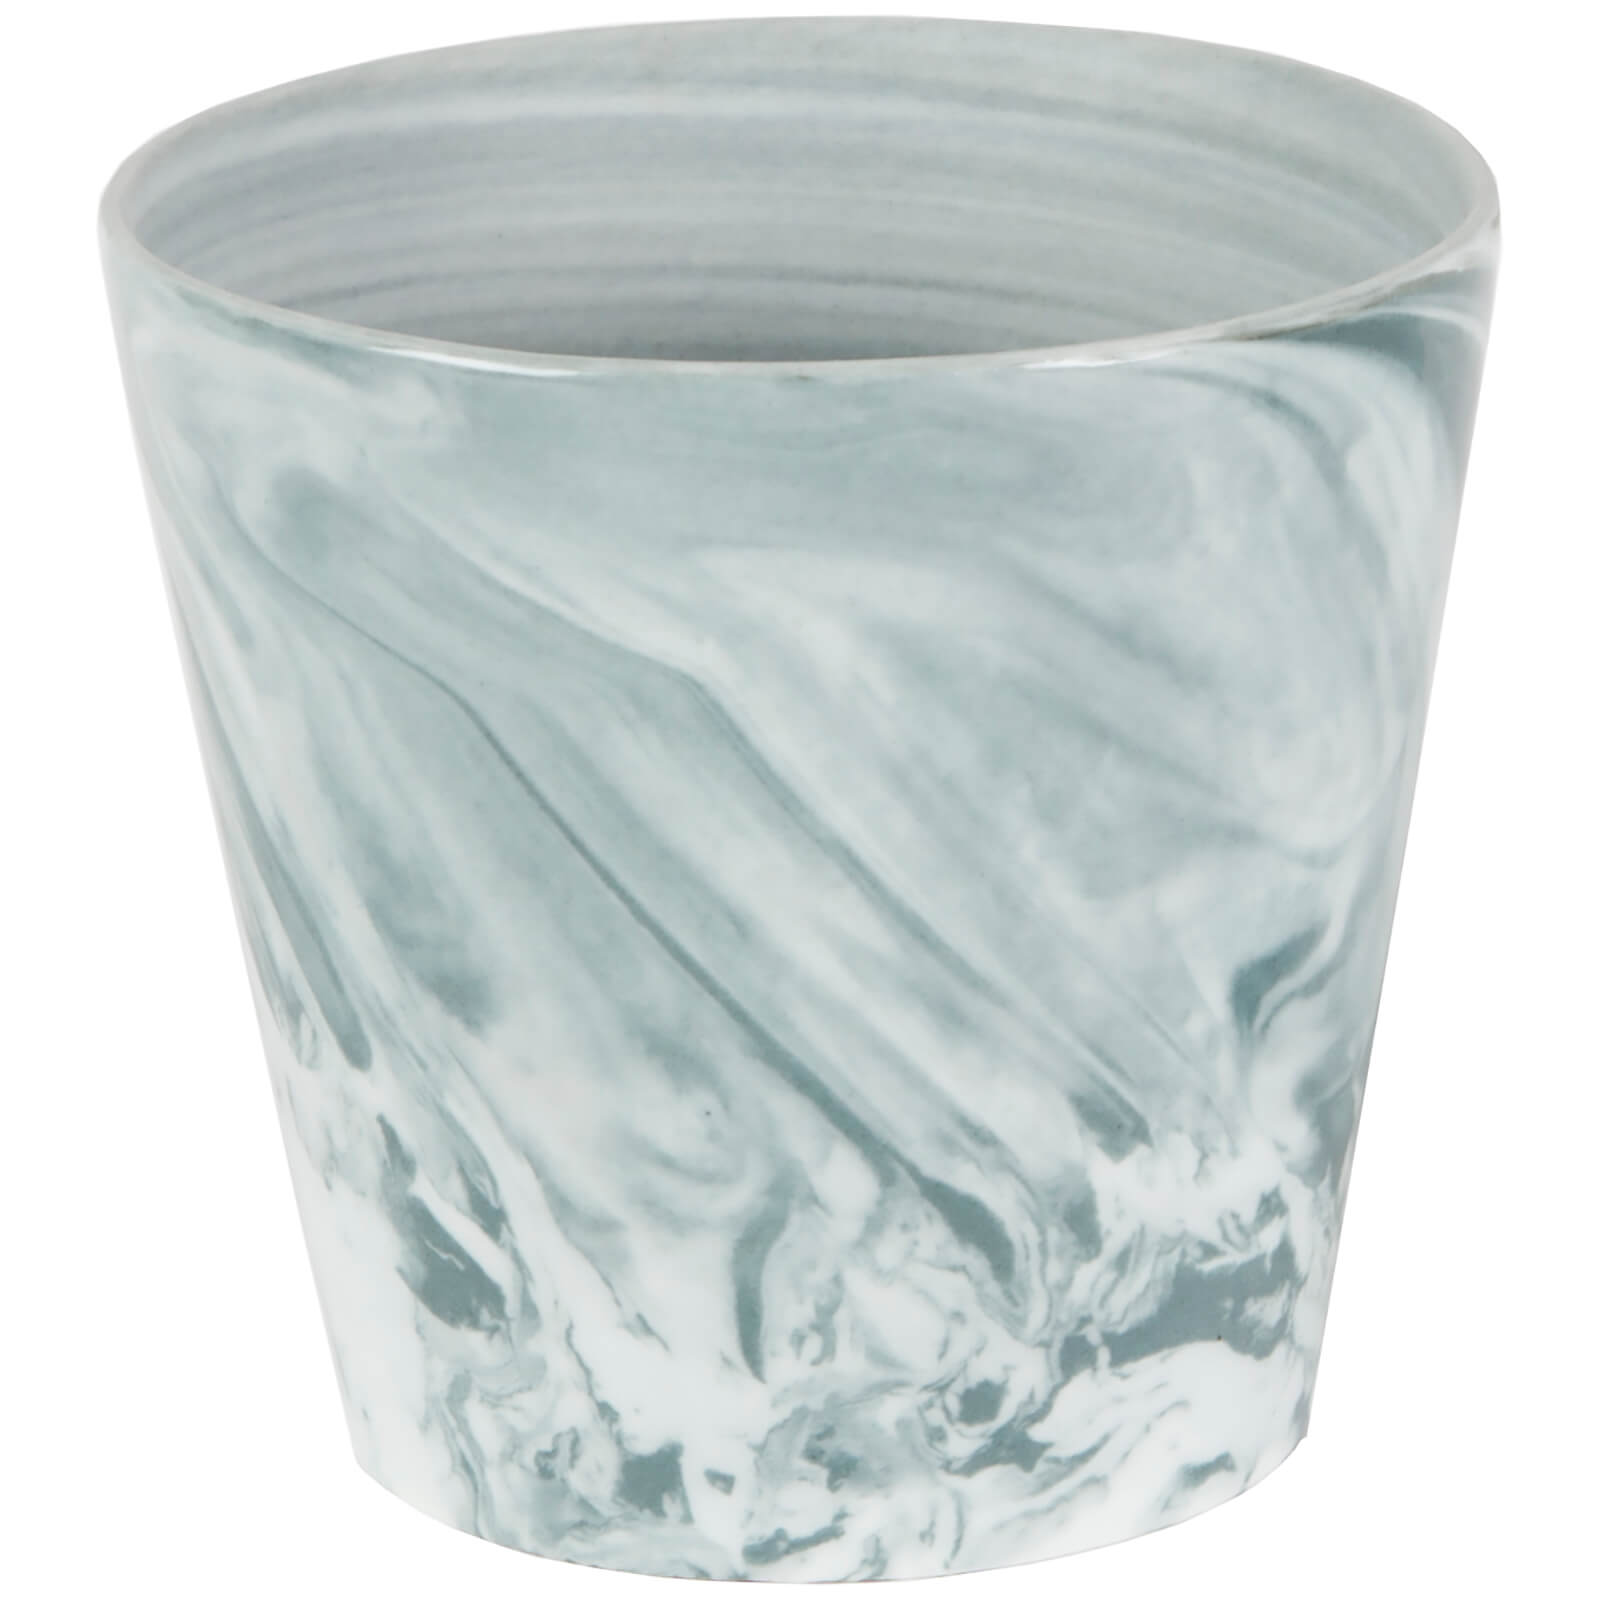 Sass & Belle Marbled Planter